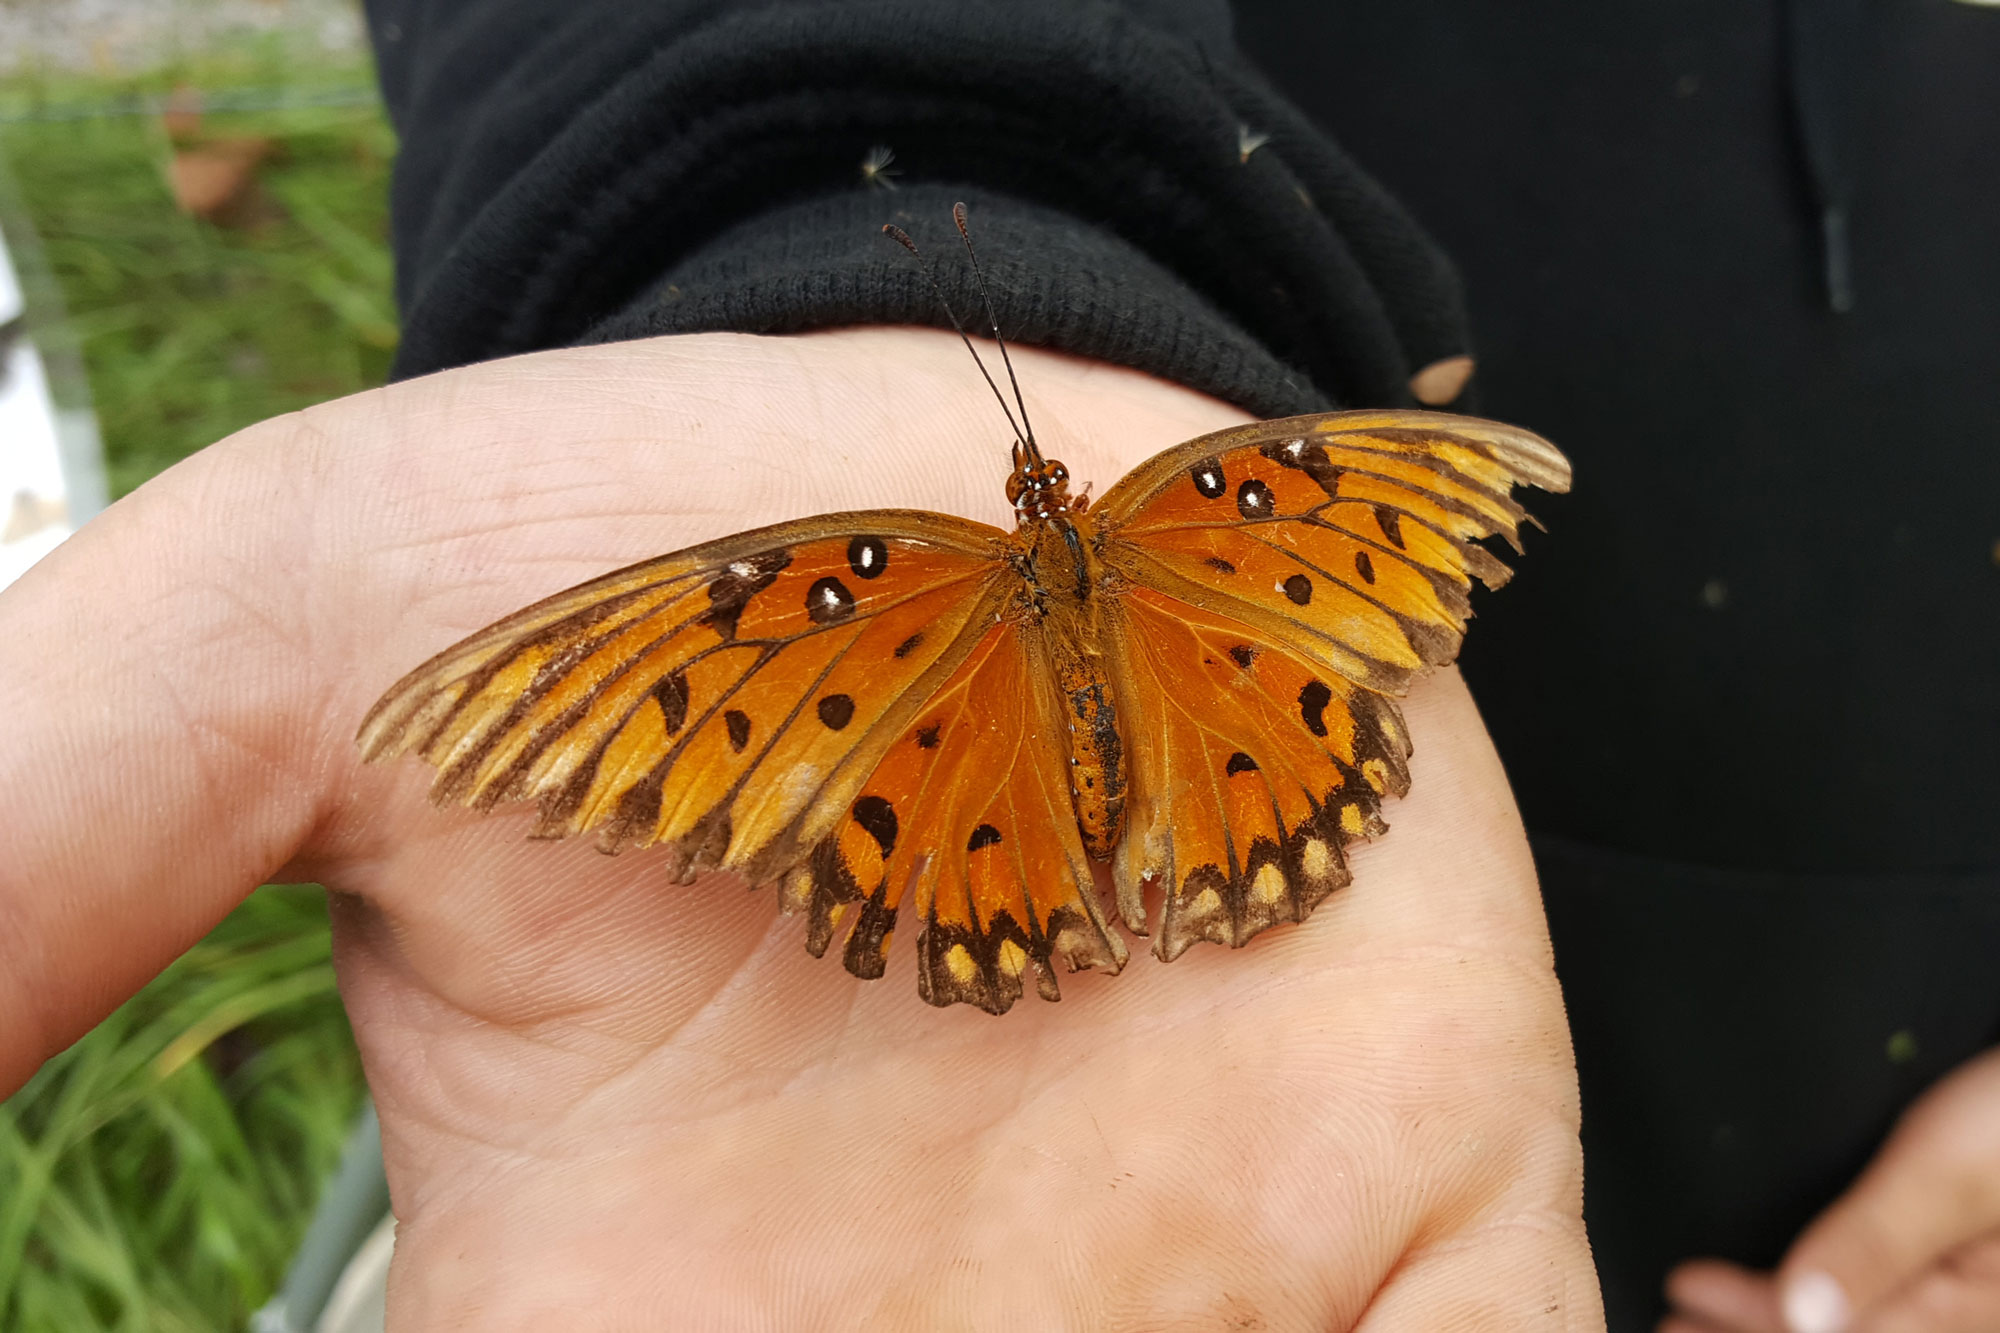 A butterfly rests on a volunteer's hand